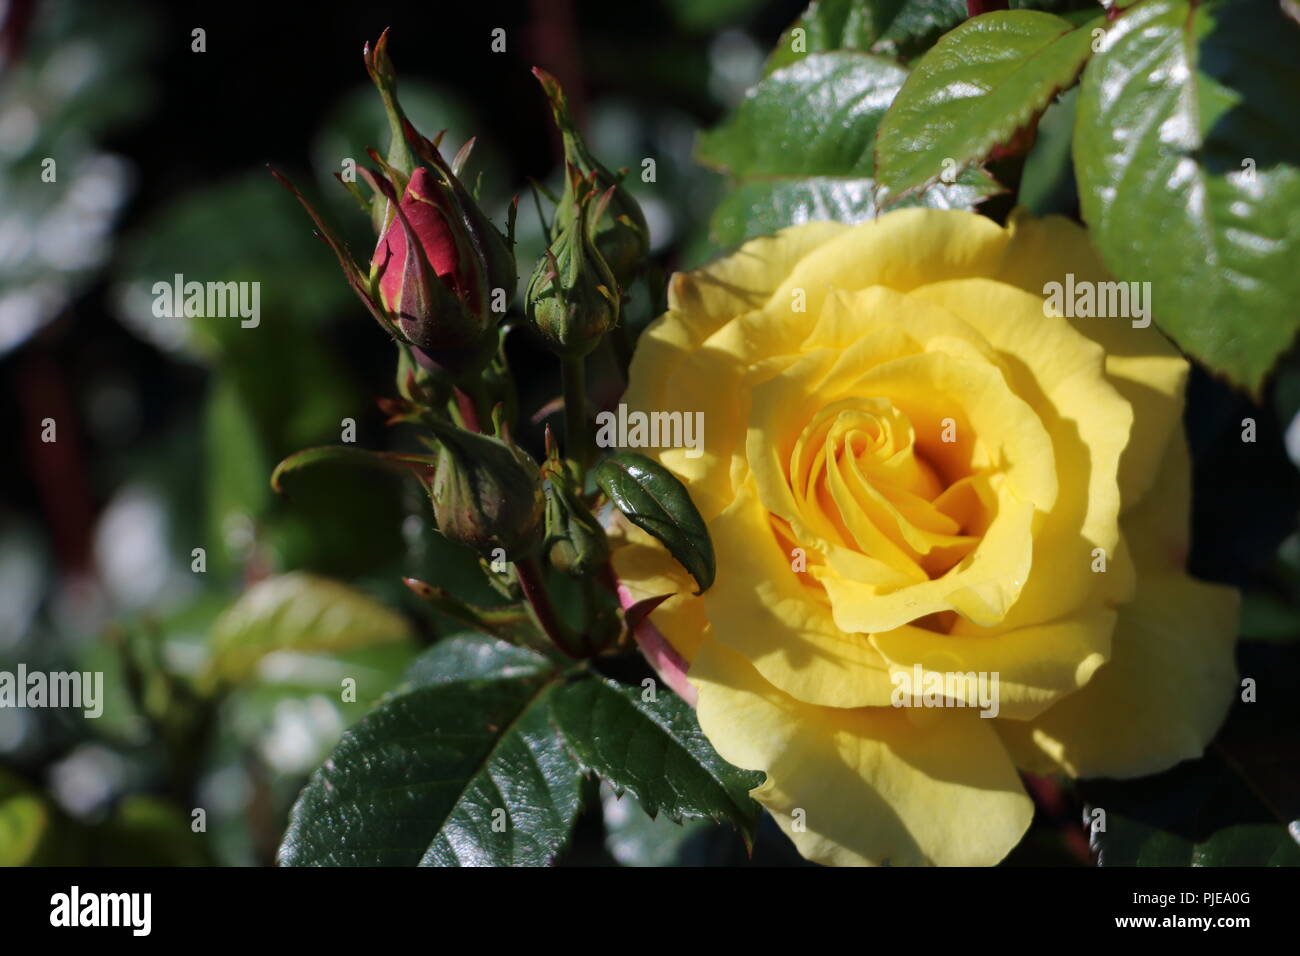 beautiful yellow rose and dark green leaves., picture taken in Alesund norway - Stock Image